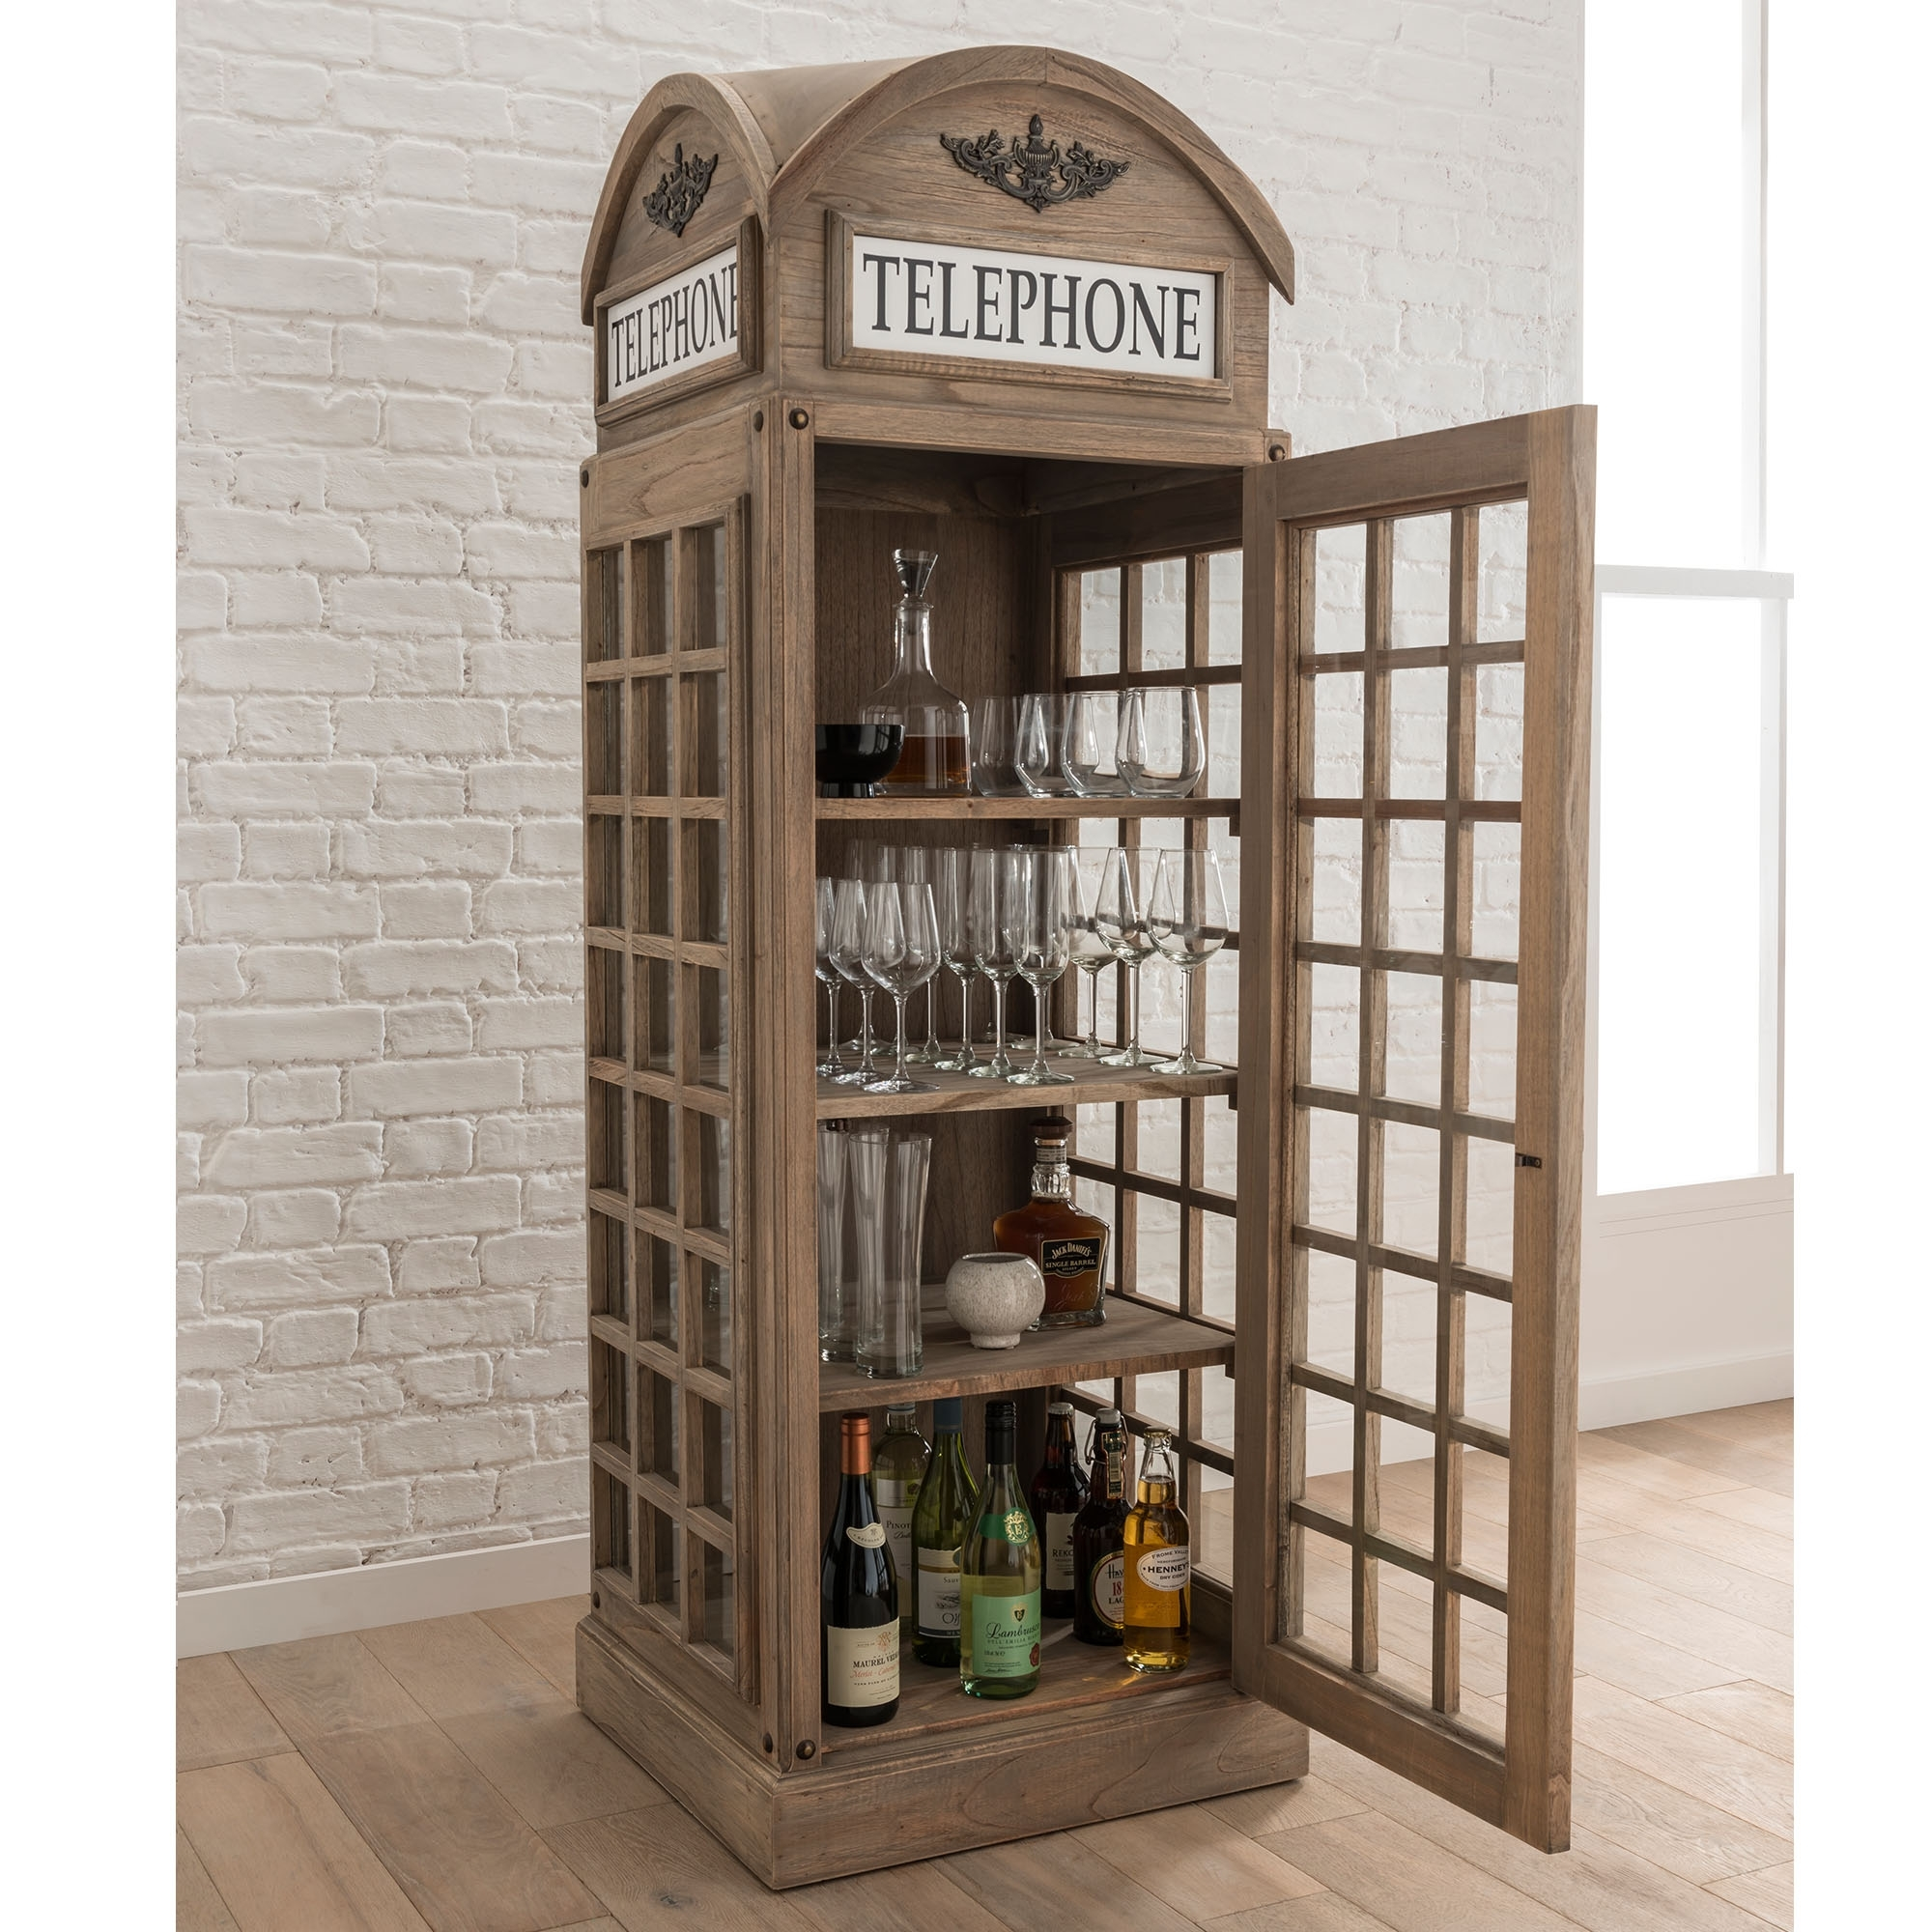 Display Cabinet In A London Telephone Box Style Wooden Cabinets